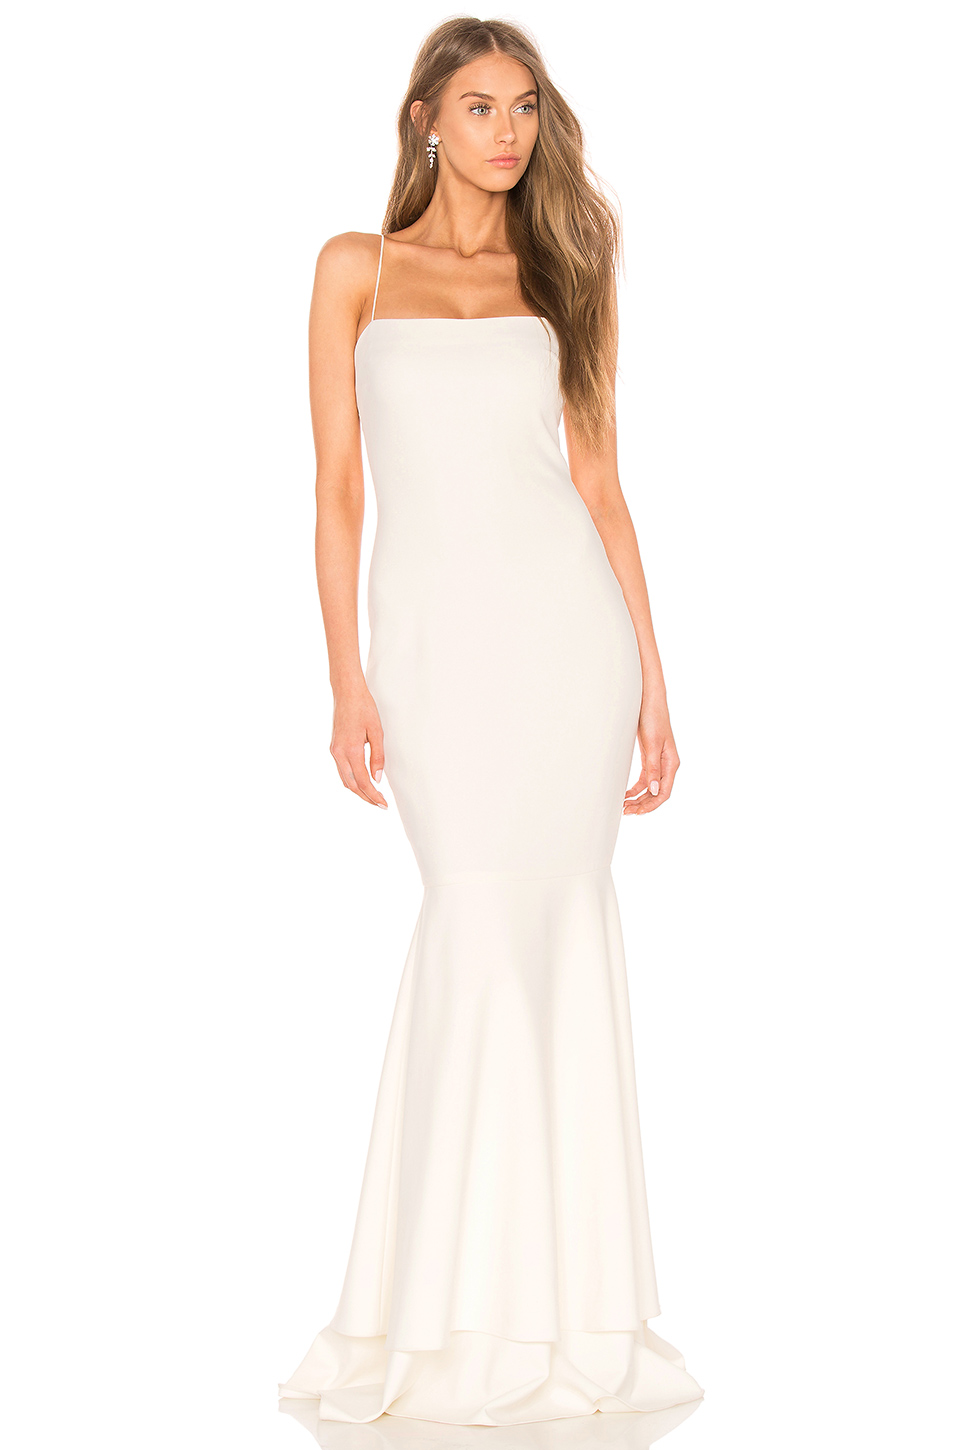 AURORA GOWN BY LIKELY, $398 AT REVOLVE.COM